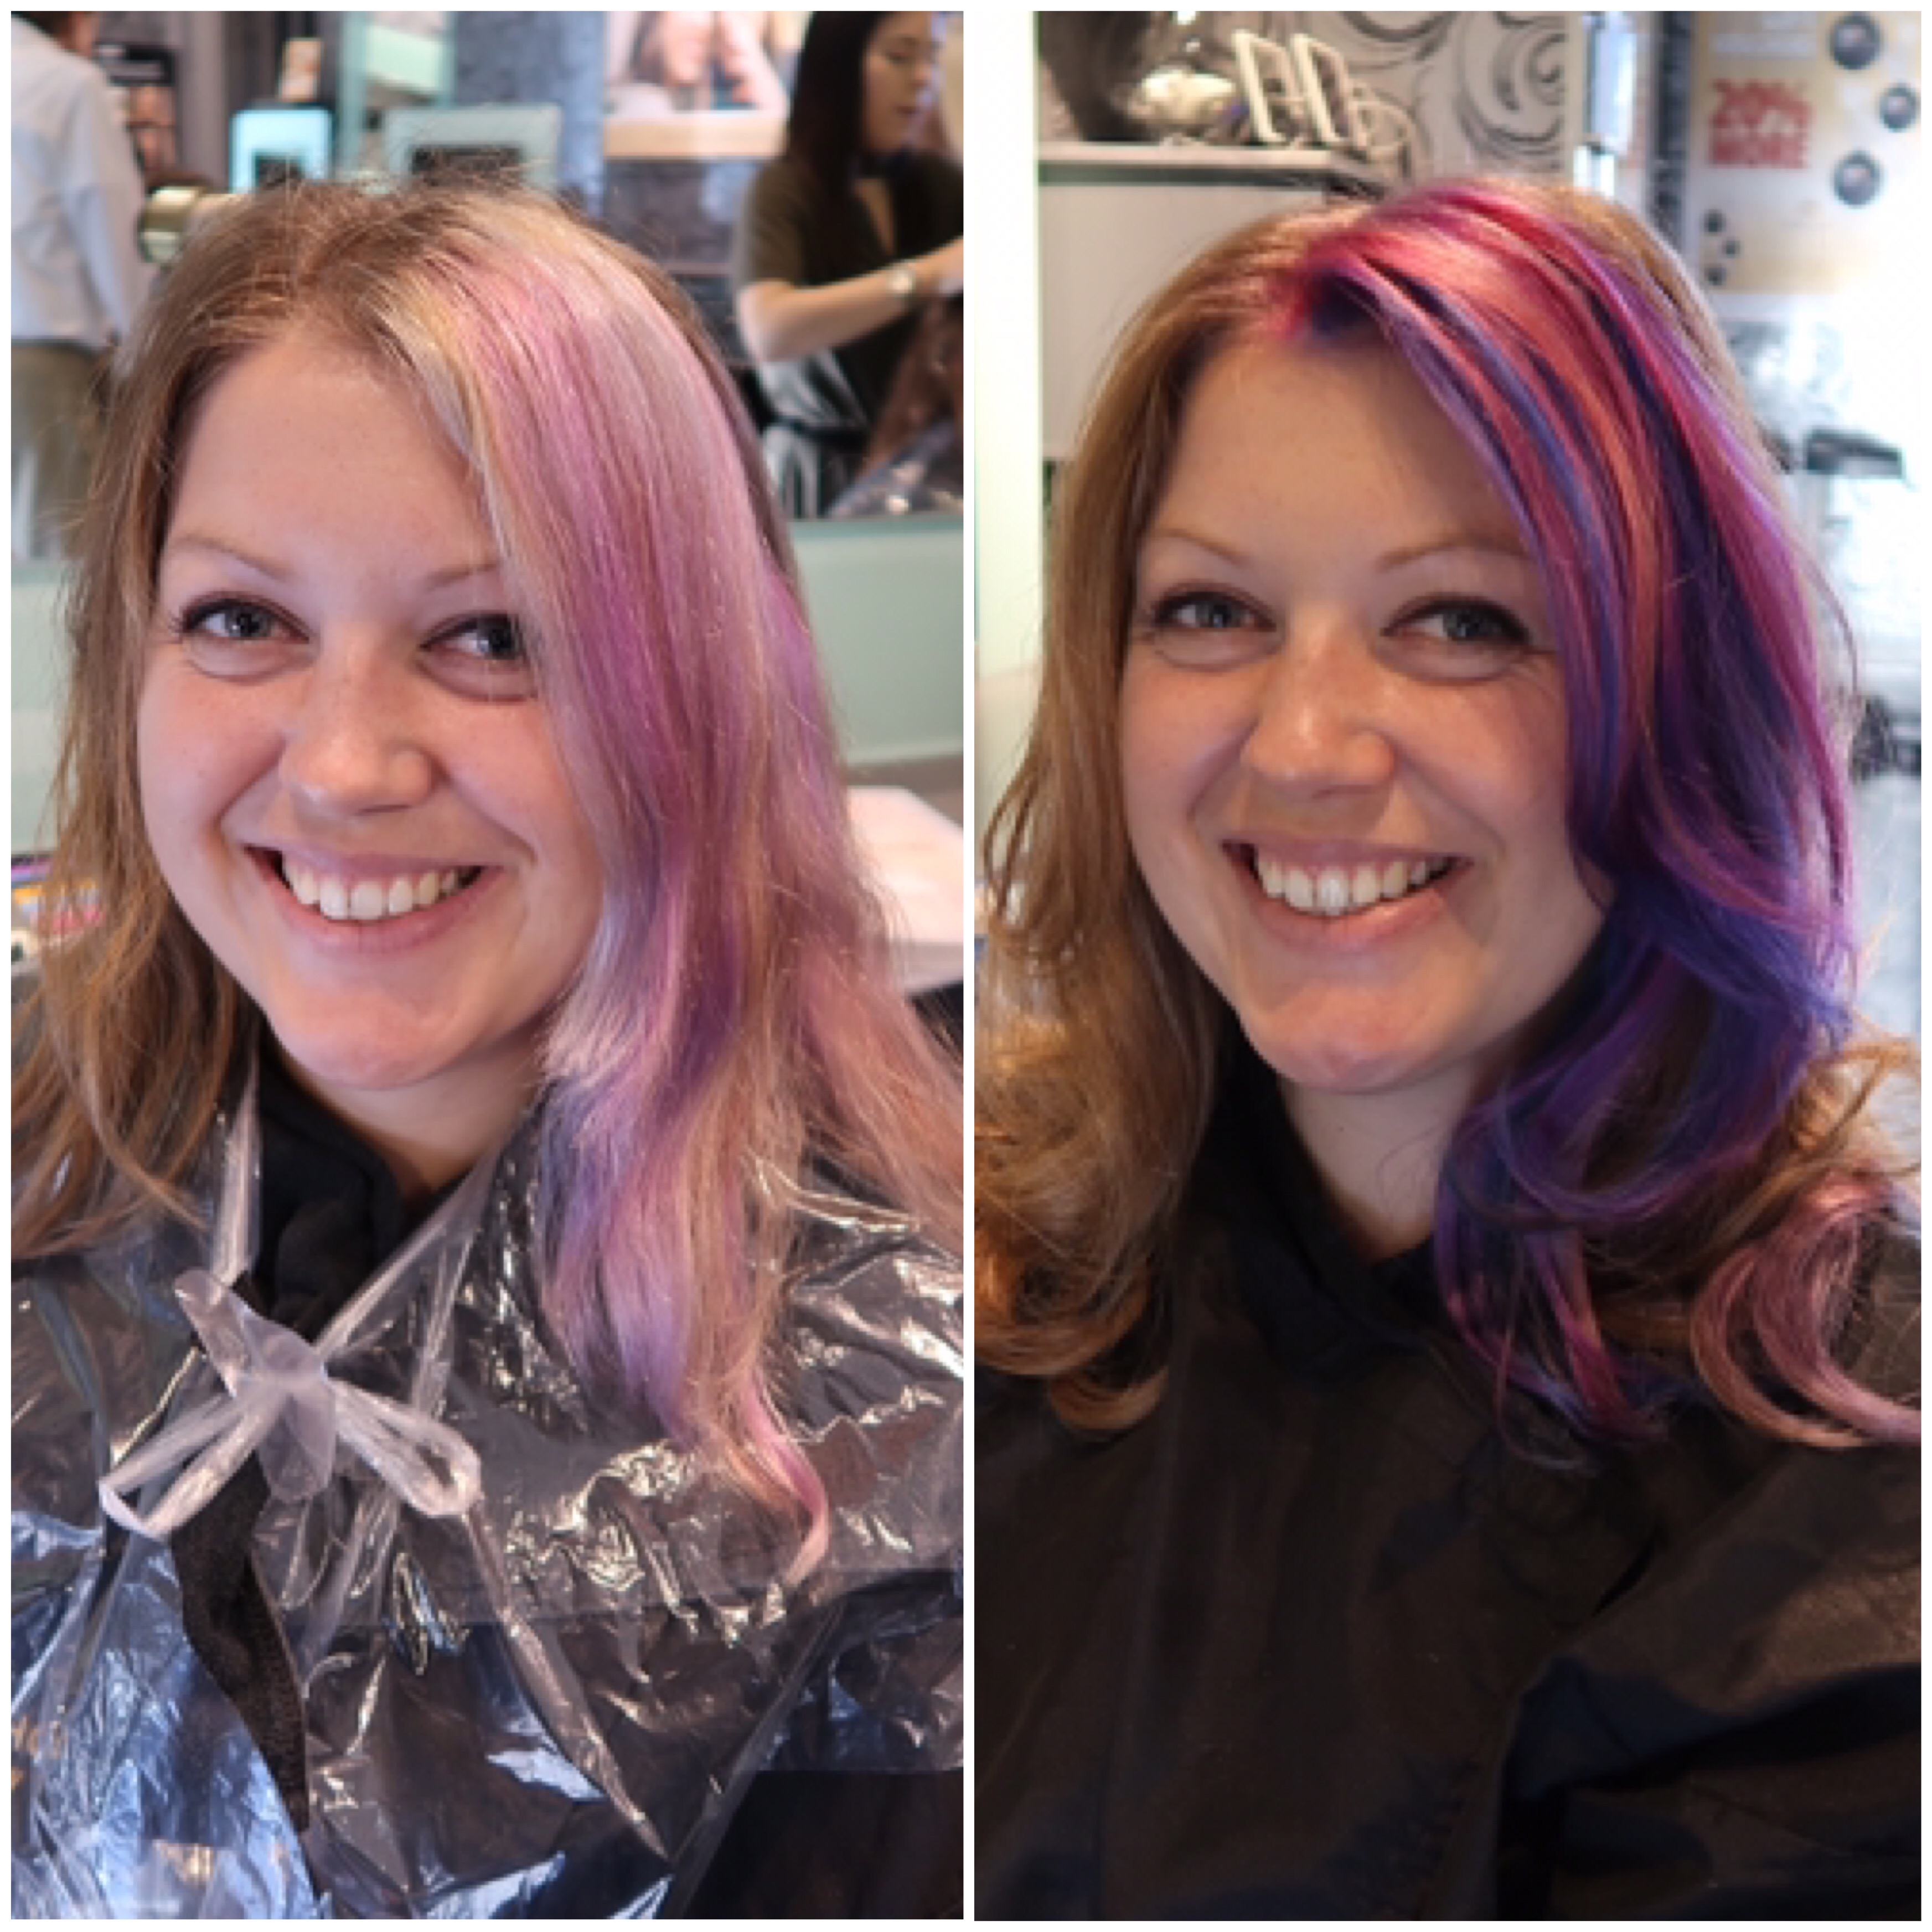 A before and after of my hair, the before being drab and shapeless with faded purpley/pink on one side and the after photo with very bright pink, purple and dark blue colour and big bouncy curls. Stuart Holmes Salon.